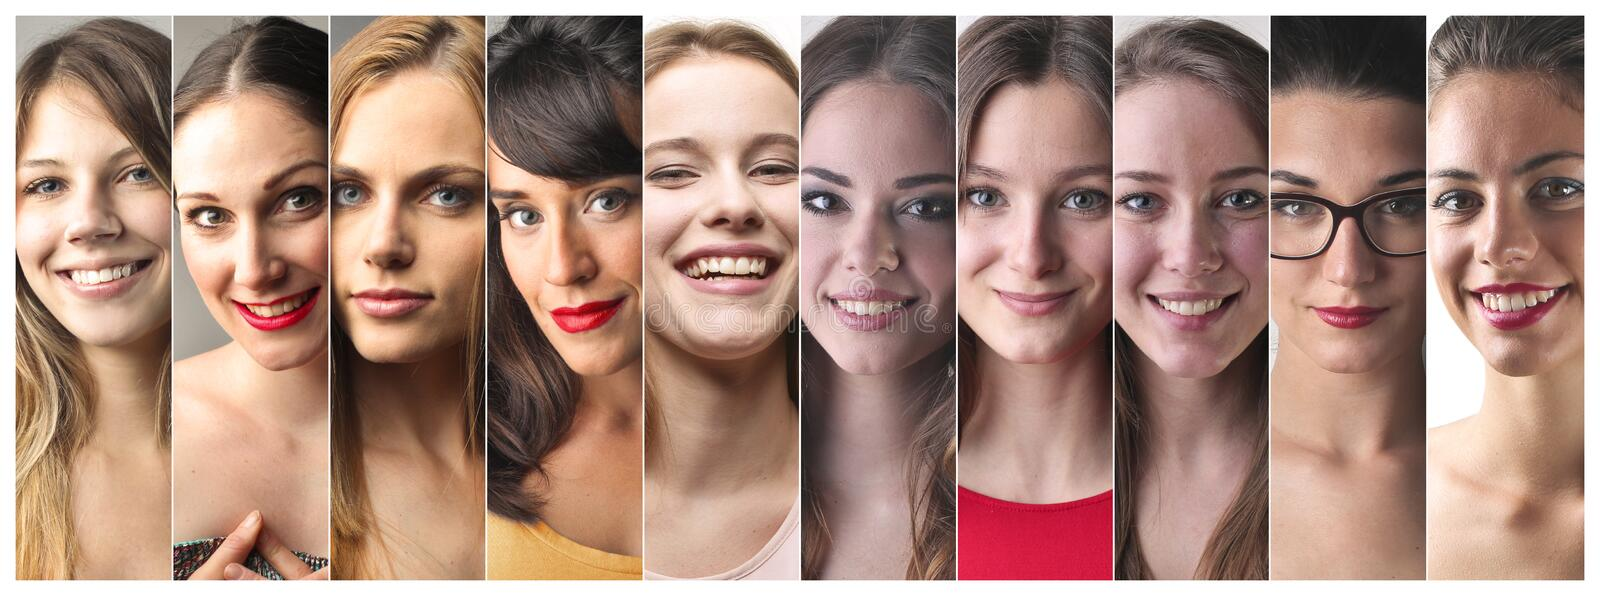 Series of women faces royalty free stock images